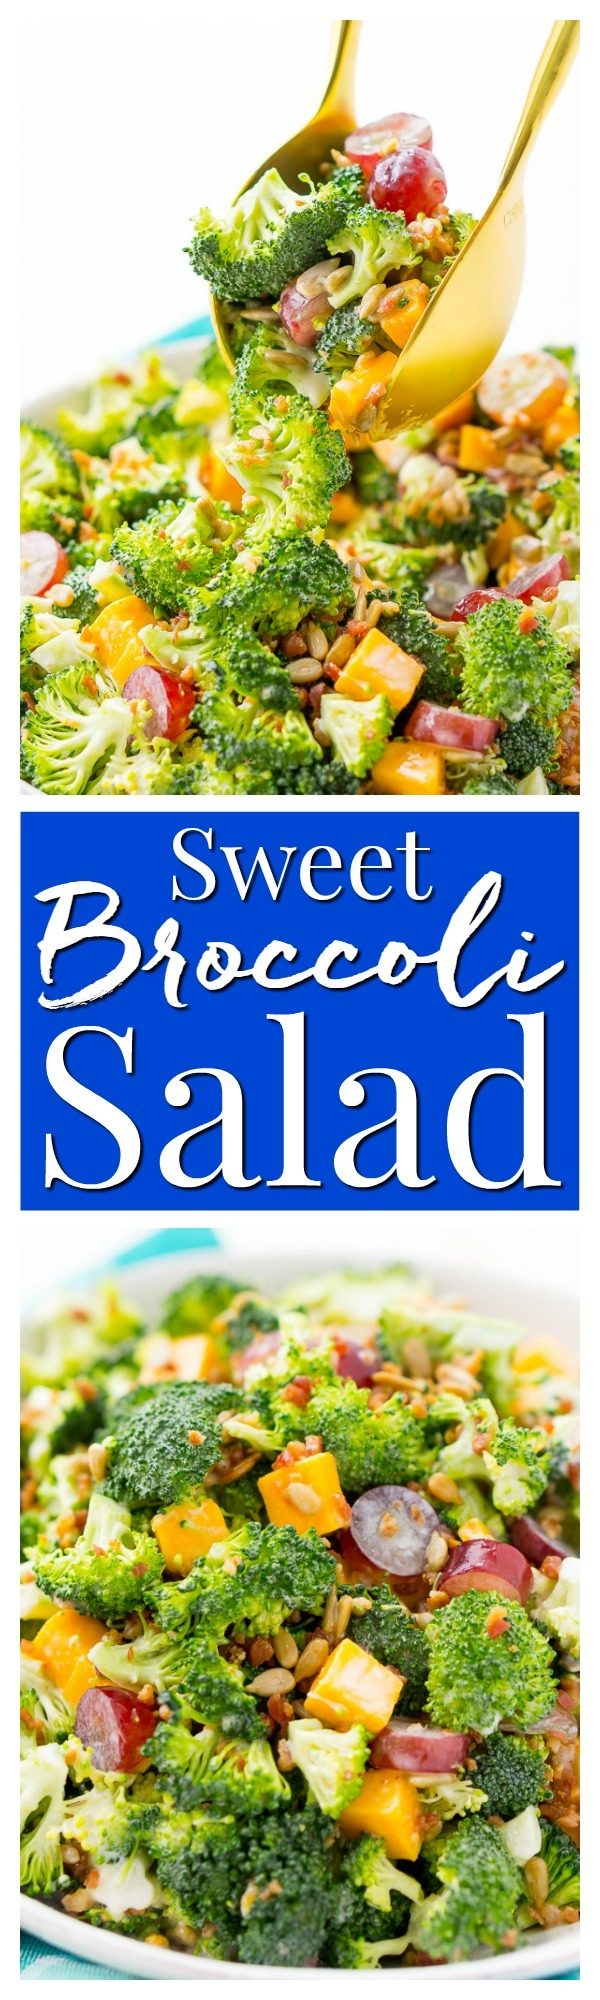 This Sweet Broccoli Salad is an easy,crunchy, and lightly sweetened side salad that's perfect for BBQs and more! Made with fresh broccoli, grapes, cheese, sunflower seeds, bacon, and a delightful dressing!